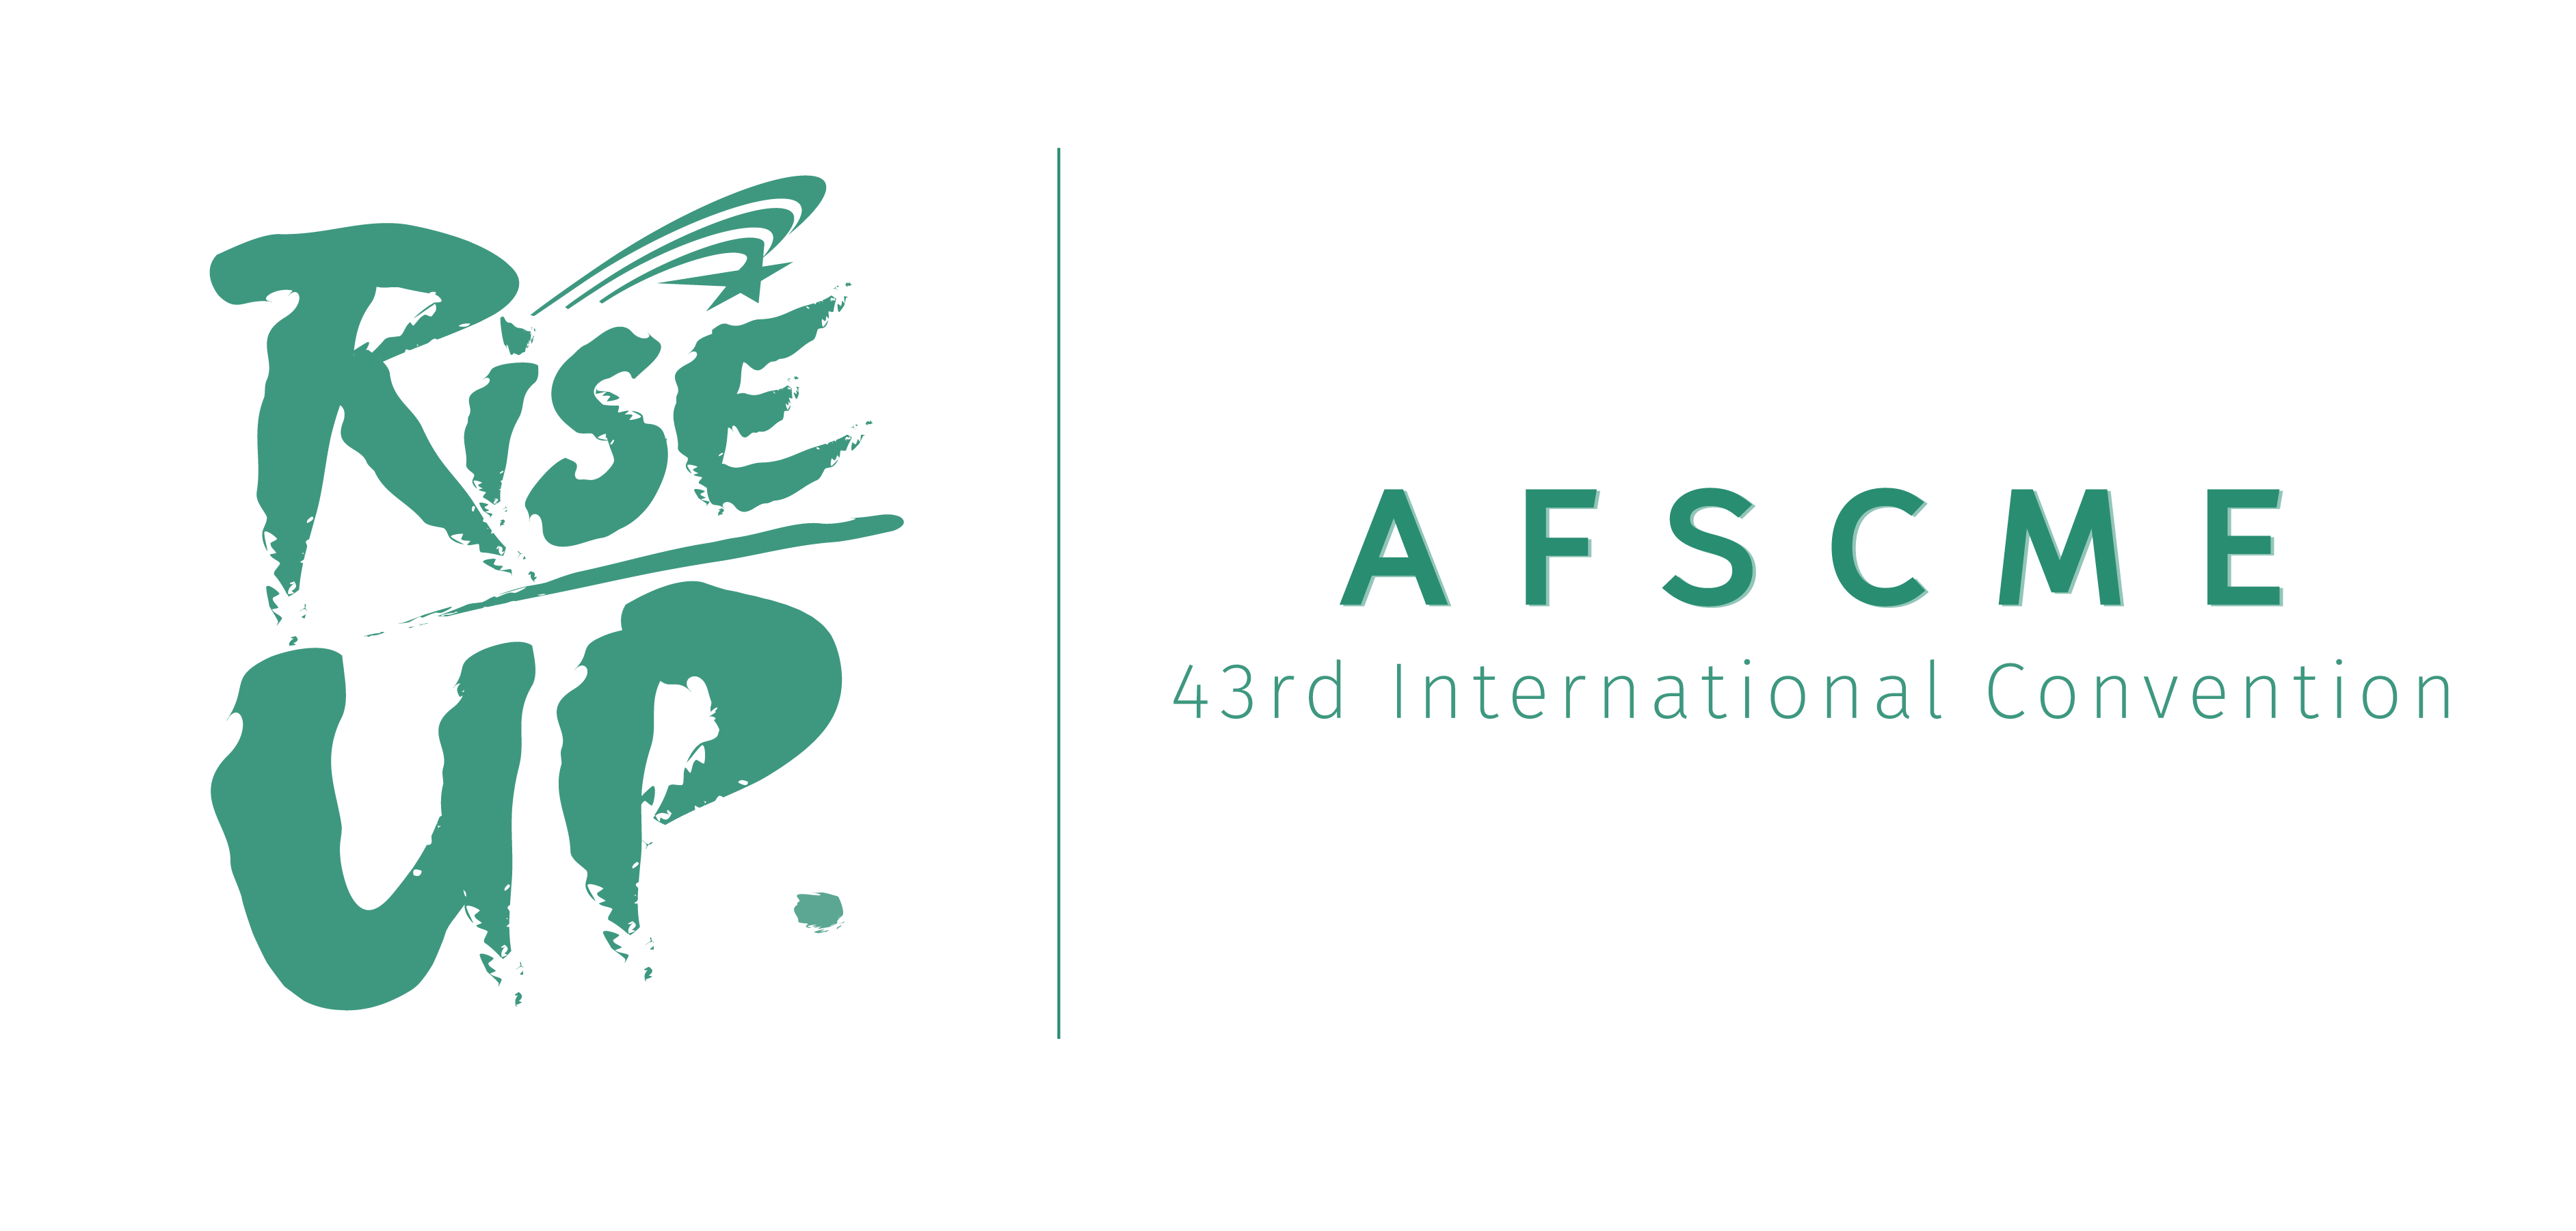 AFSCME 43rd International Convention, Housing & Workshop Registration